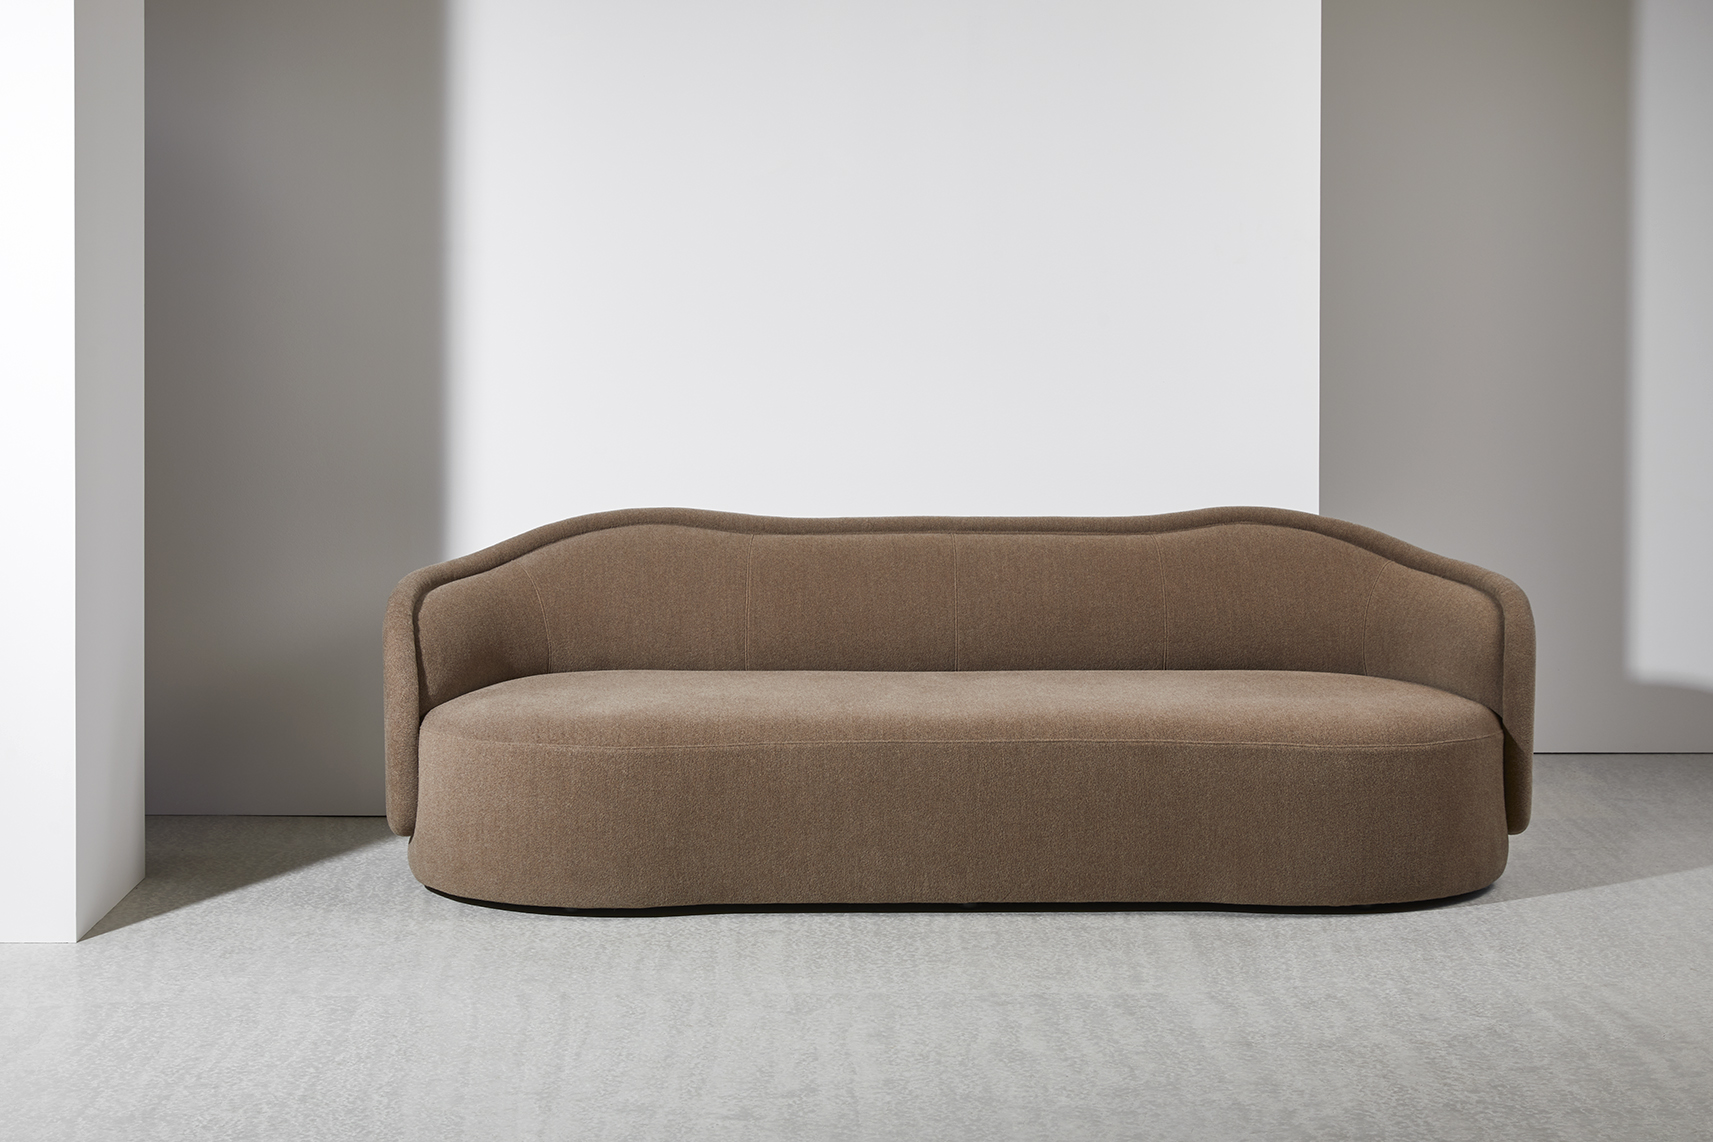 PIA-sofa-christophe-delcourt-Collection-Particuliere